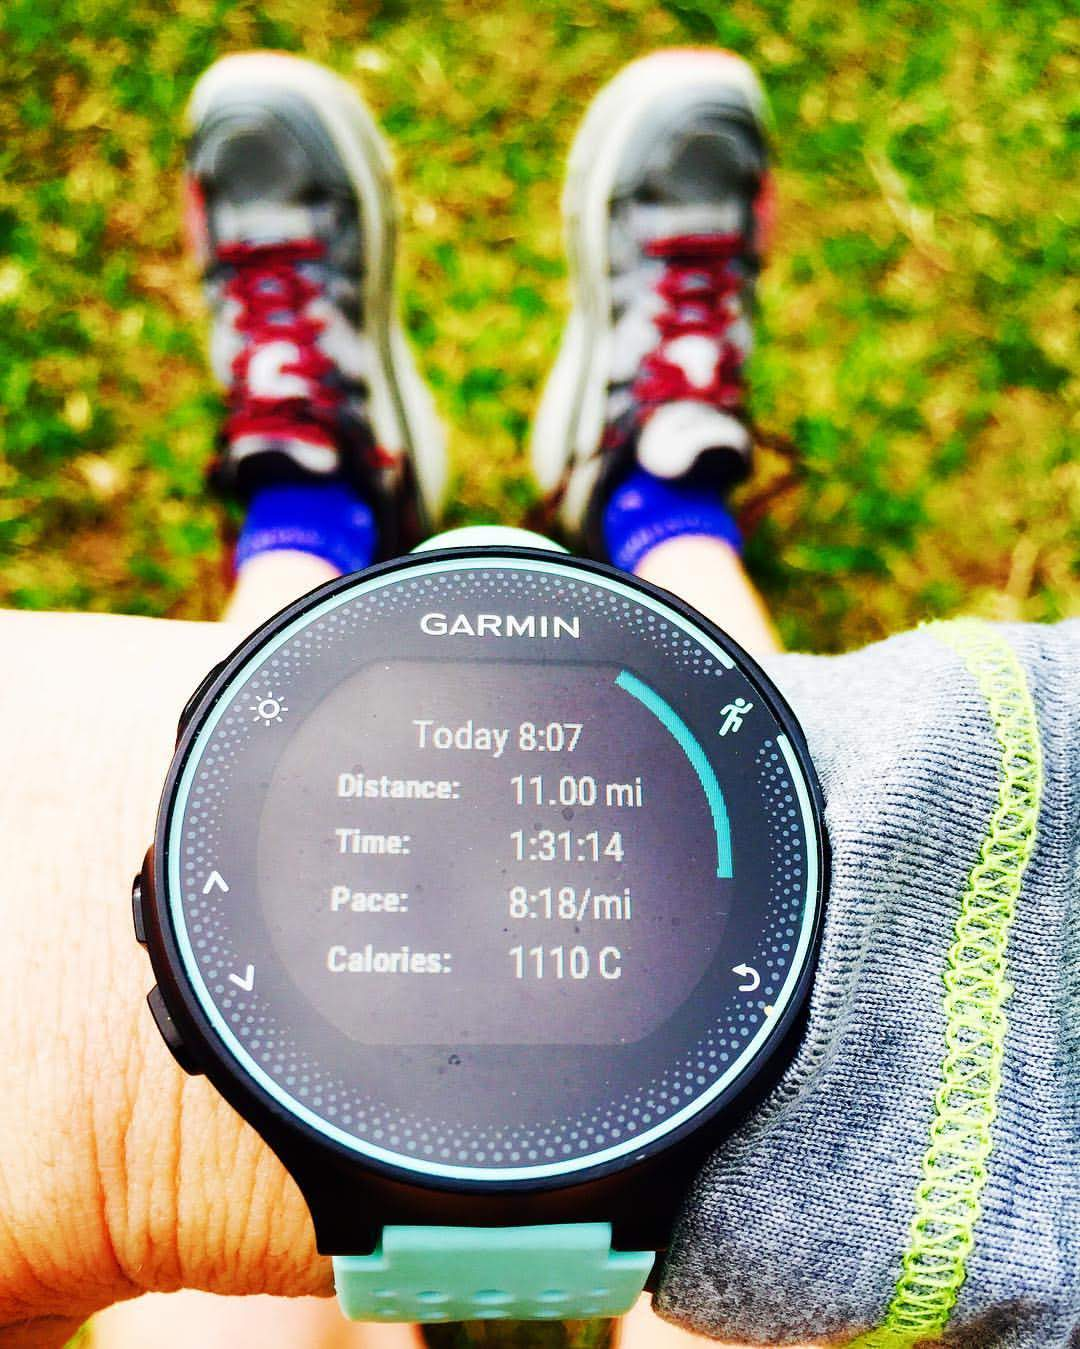 Typical Garmin Forerunner 235 showing a long run completed by a runner.